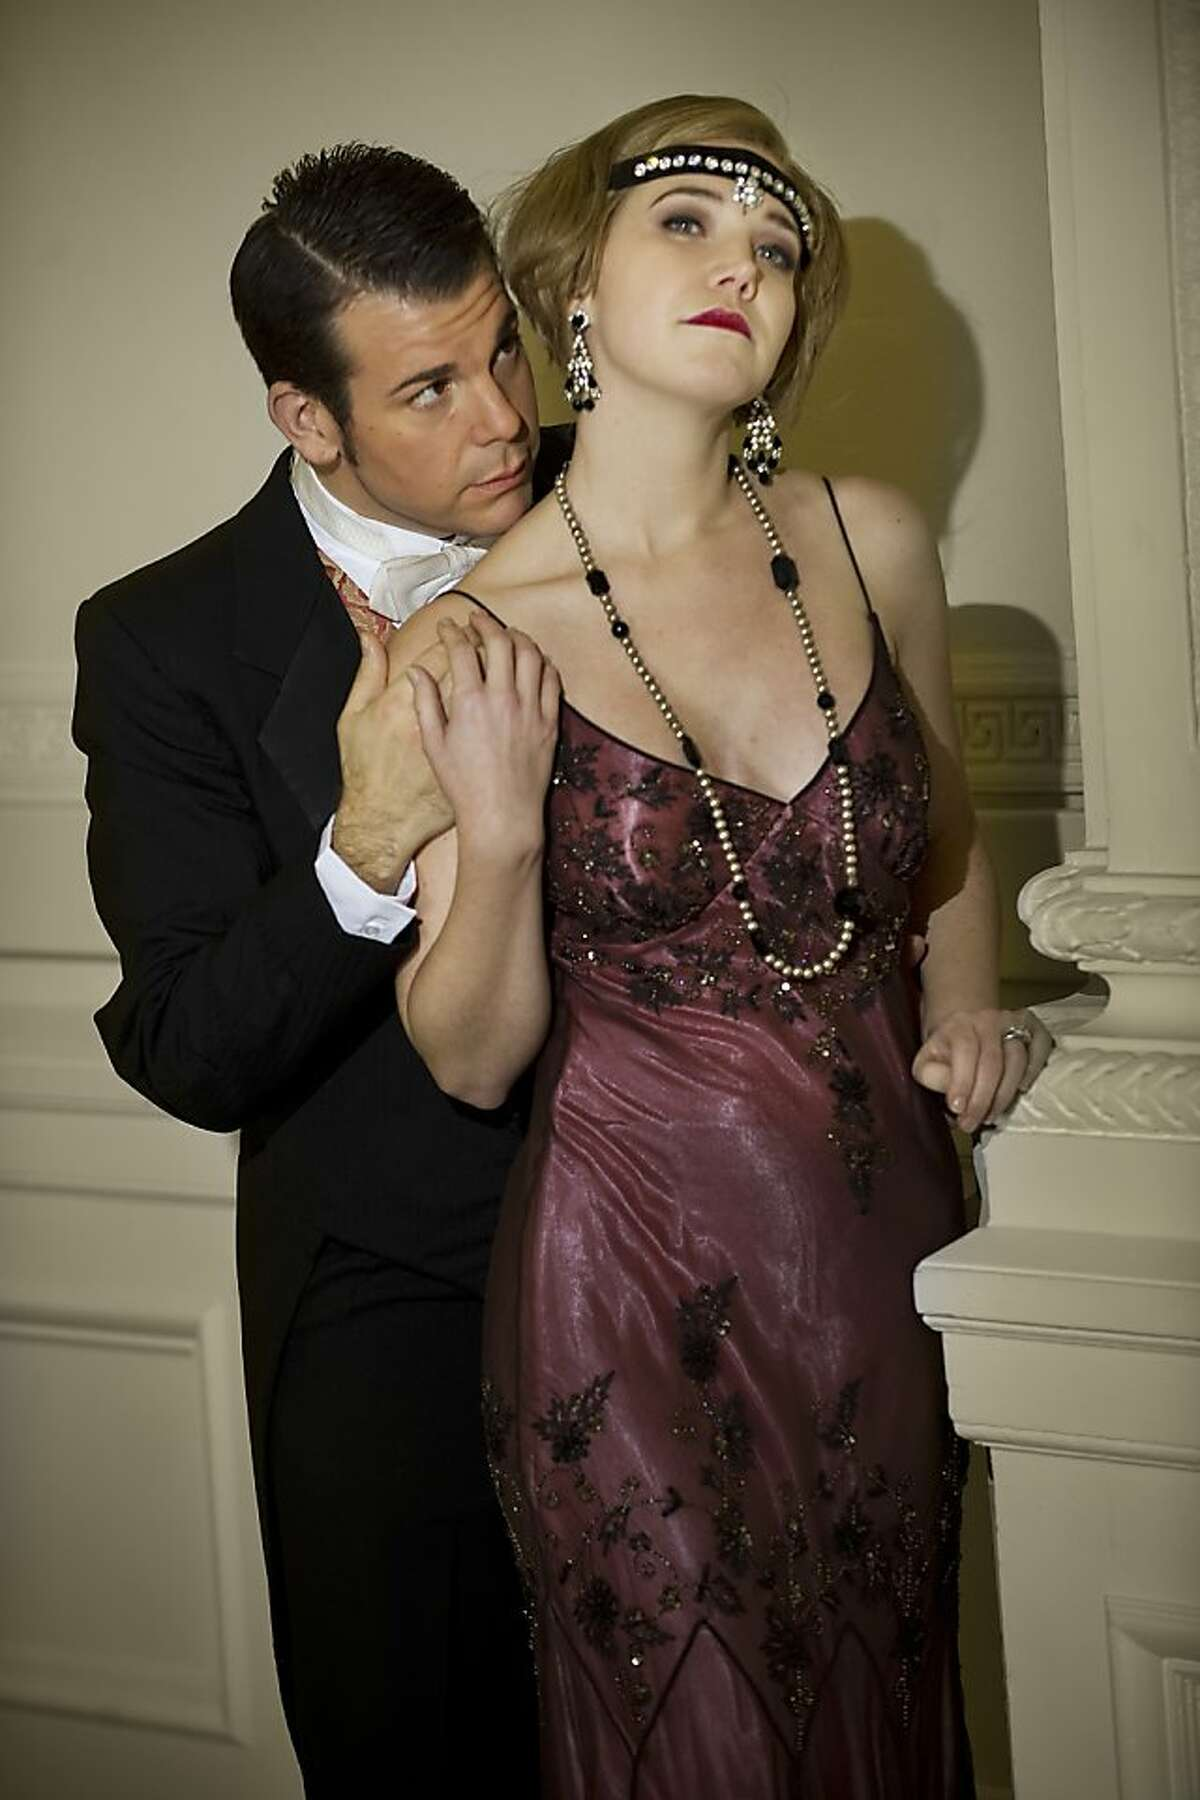 MARCO PANUCCIO as Jay Gatsby and SUSANNAH BILLER as Daisy Buchanan in Ensemble Parallele's 2012 production of The Great Gatsby. MARCO PANUCCIO as Jay Gatsby and SUSANNAH BILLER as Daisy Buchanan in Ensemble Parallele's 2012 production of The Great Gatsby. Photo: Steve DiBartolomeo, Westside Studio Images http://www.westsidestudioimages.com